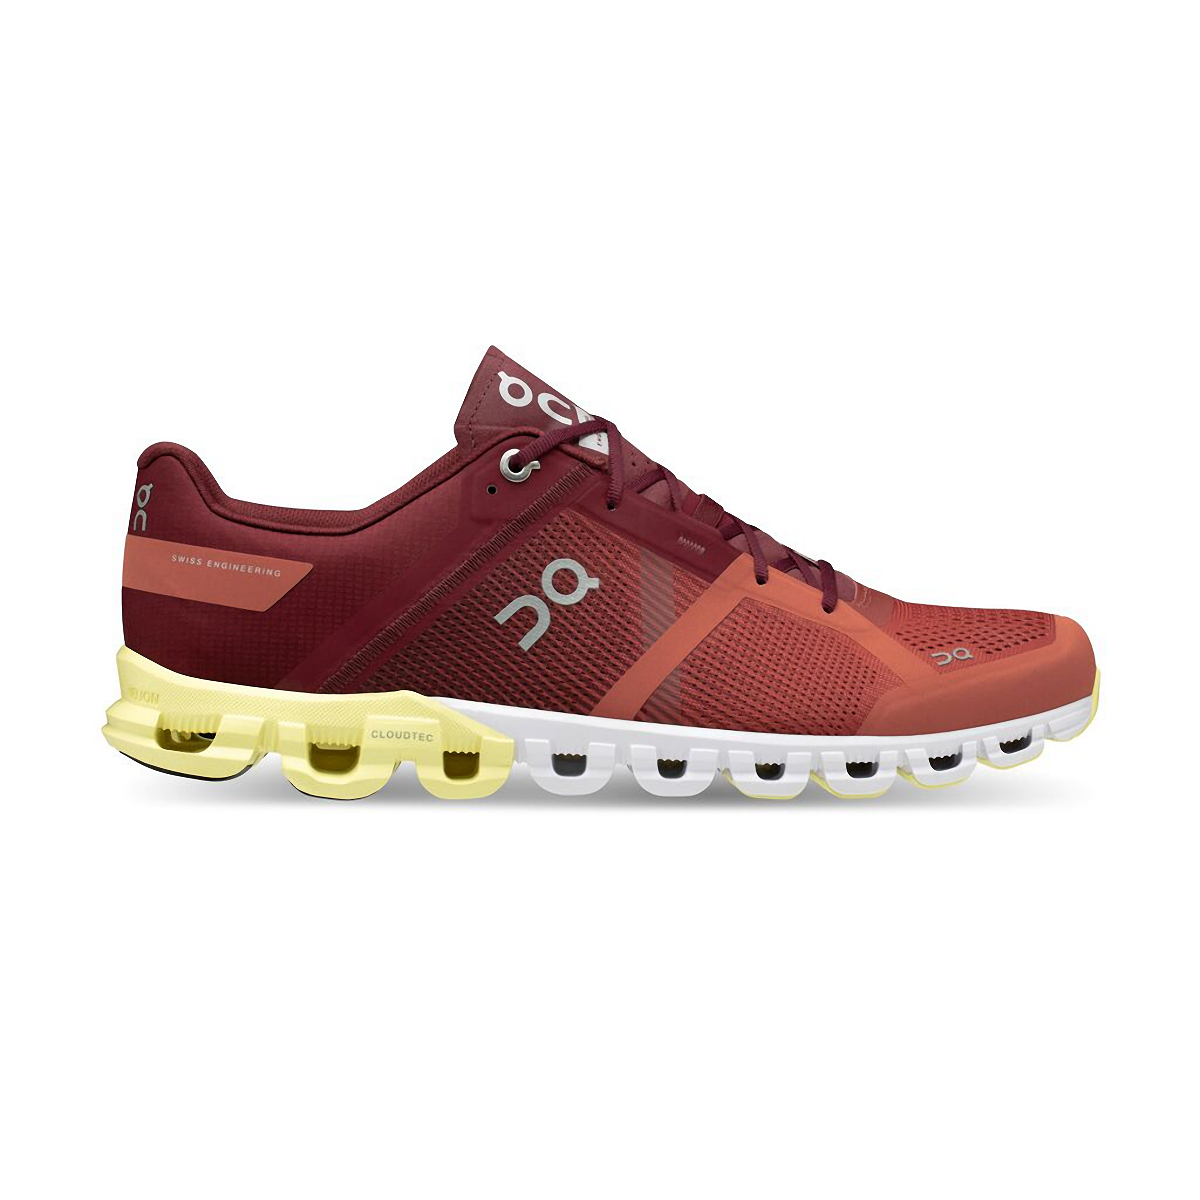 picture of the on cloudflow 2.0 in orange, burgundy, yellow and white